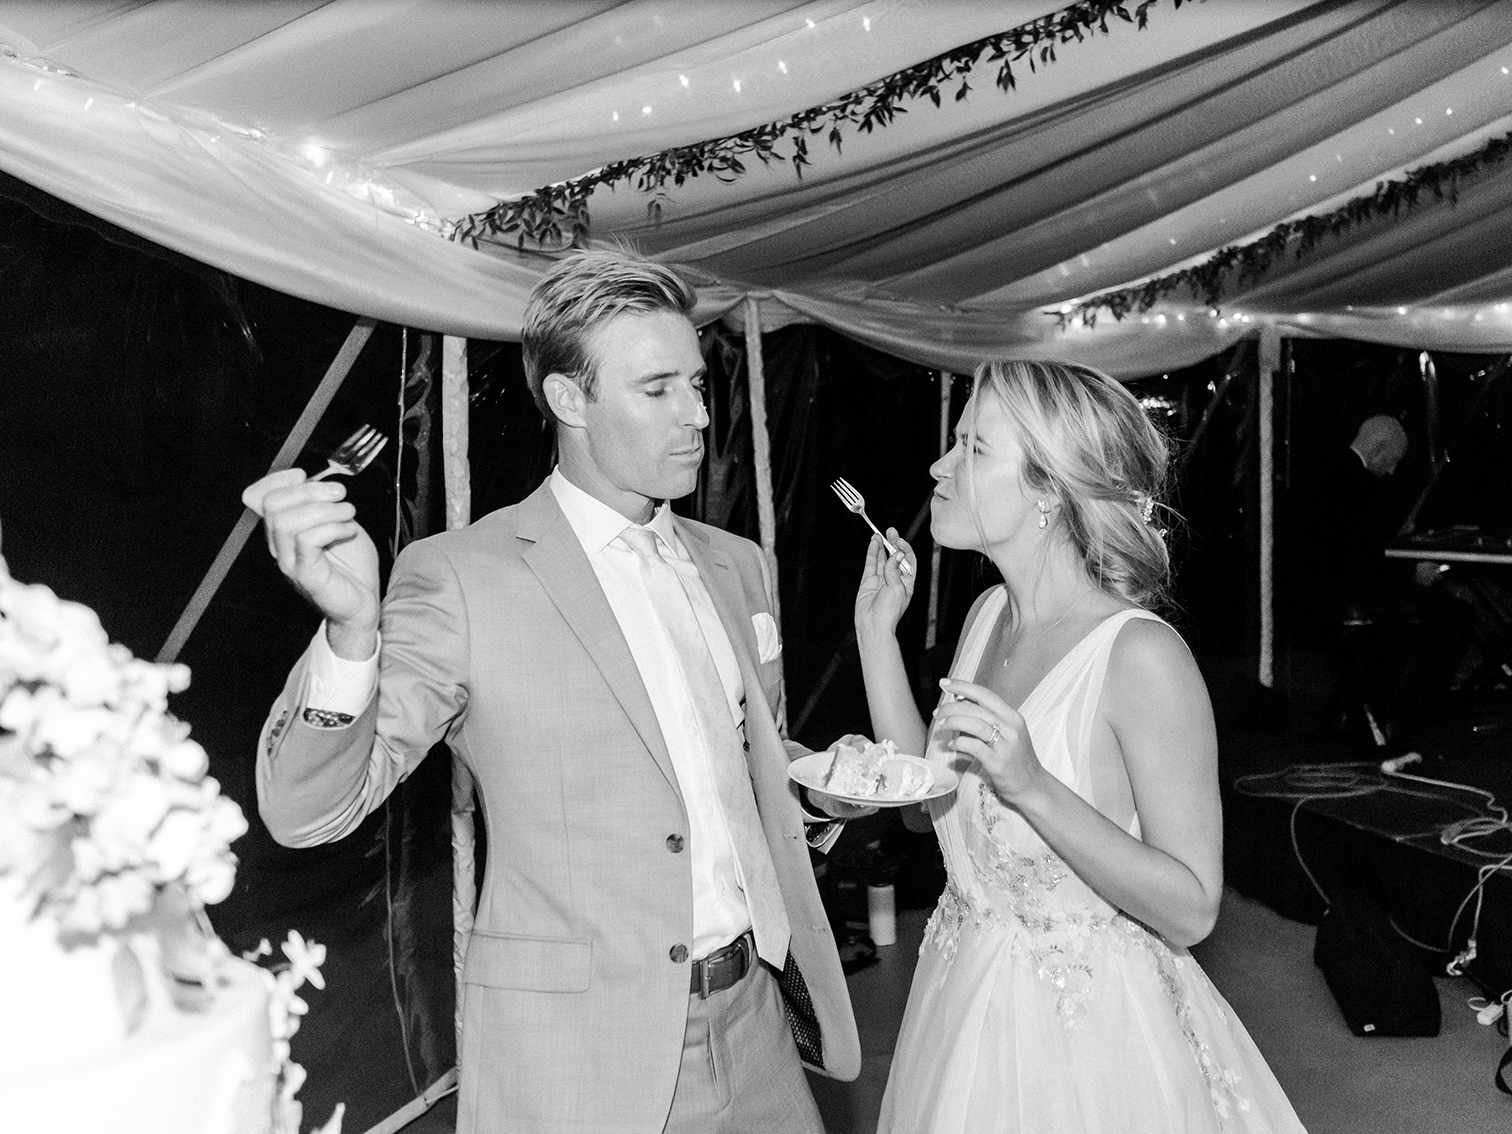 Wedding Photographers Colorado, Bride and Groom Eating Cake, Candid Moments, Black and White Wedding Photos